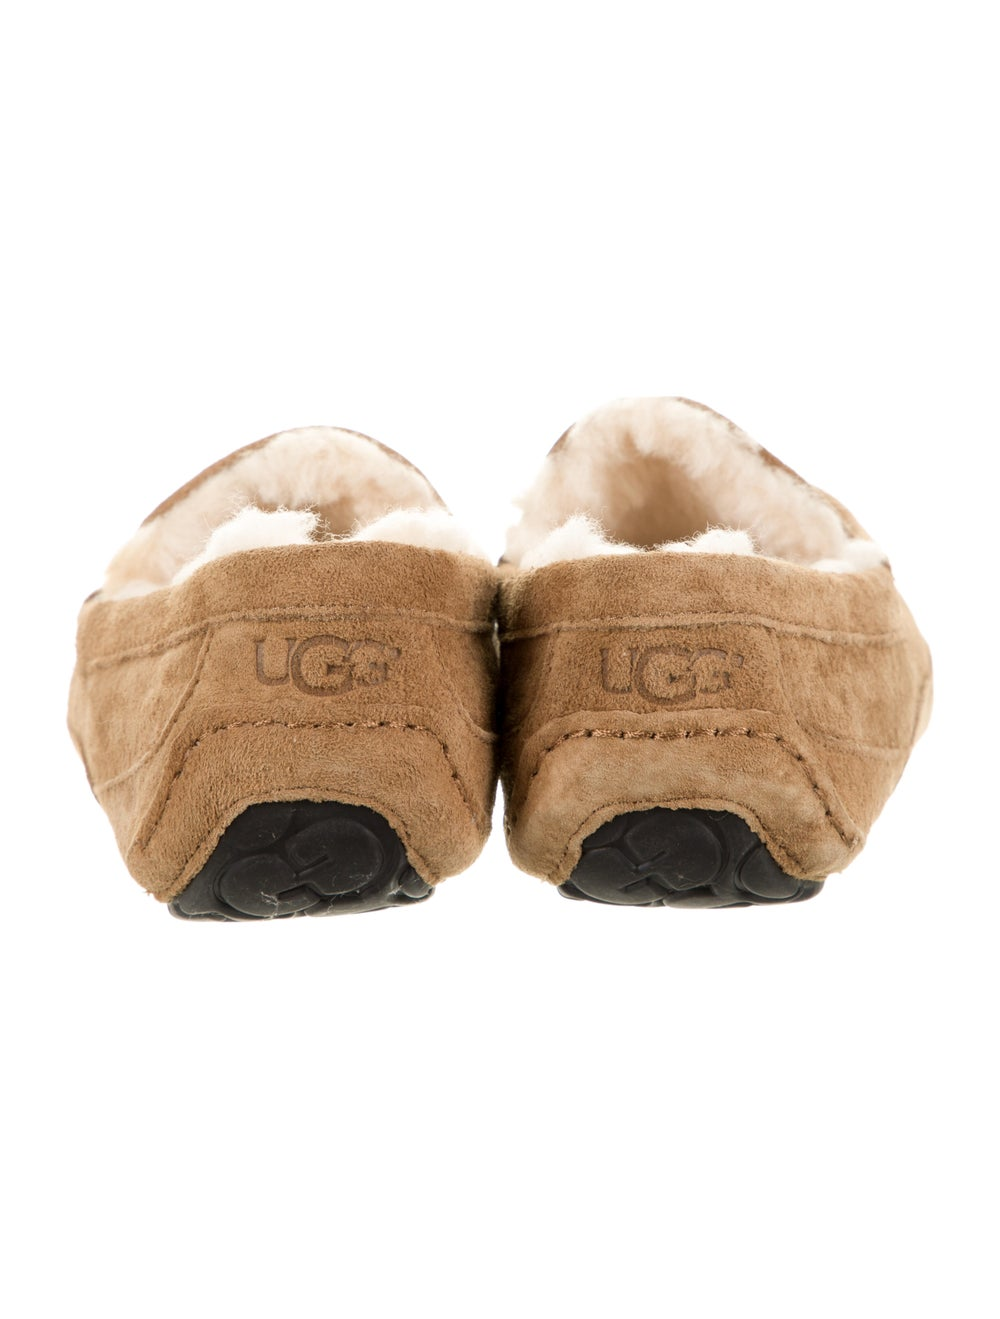 UGG Suede Slippers - image 4